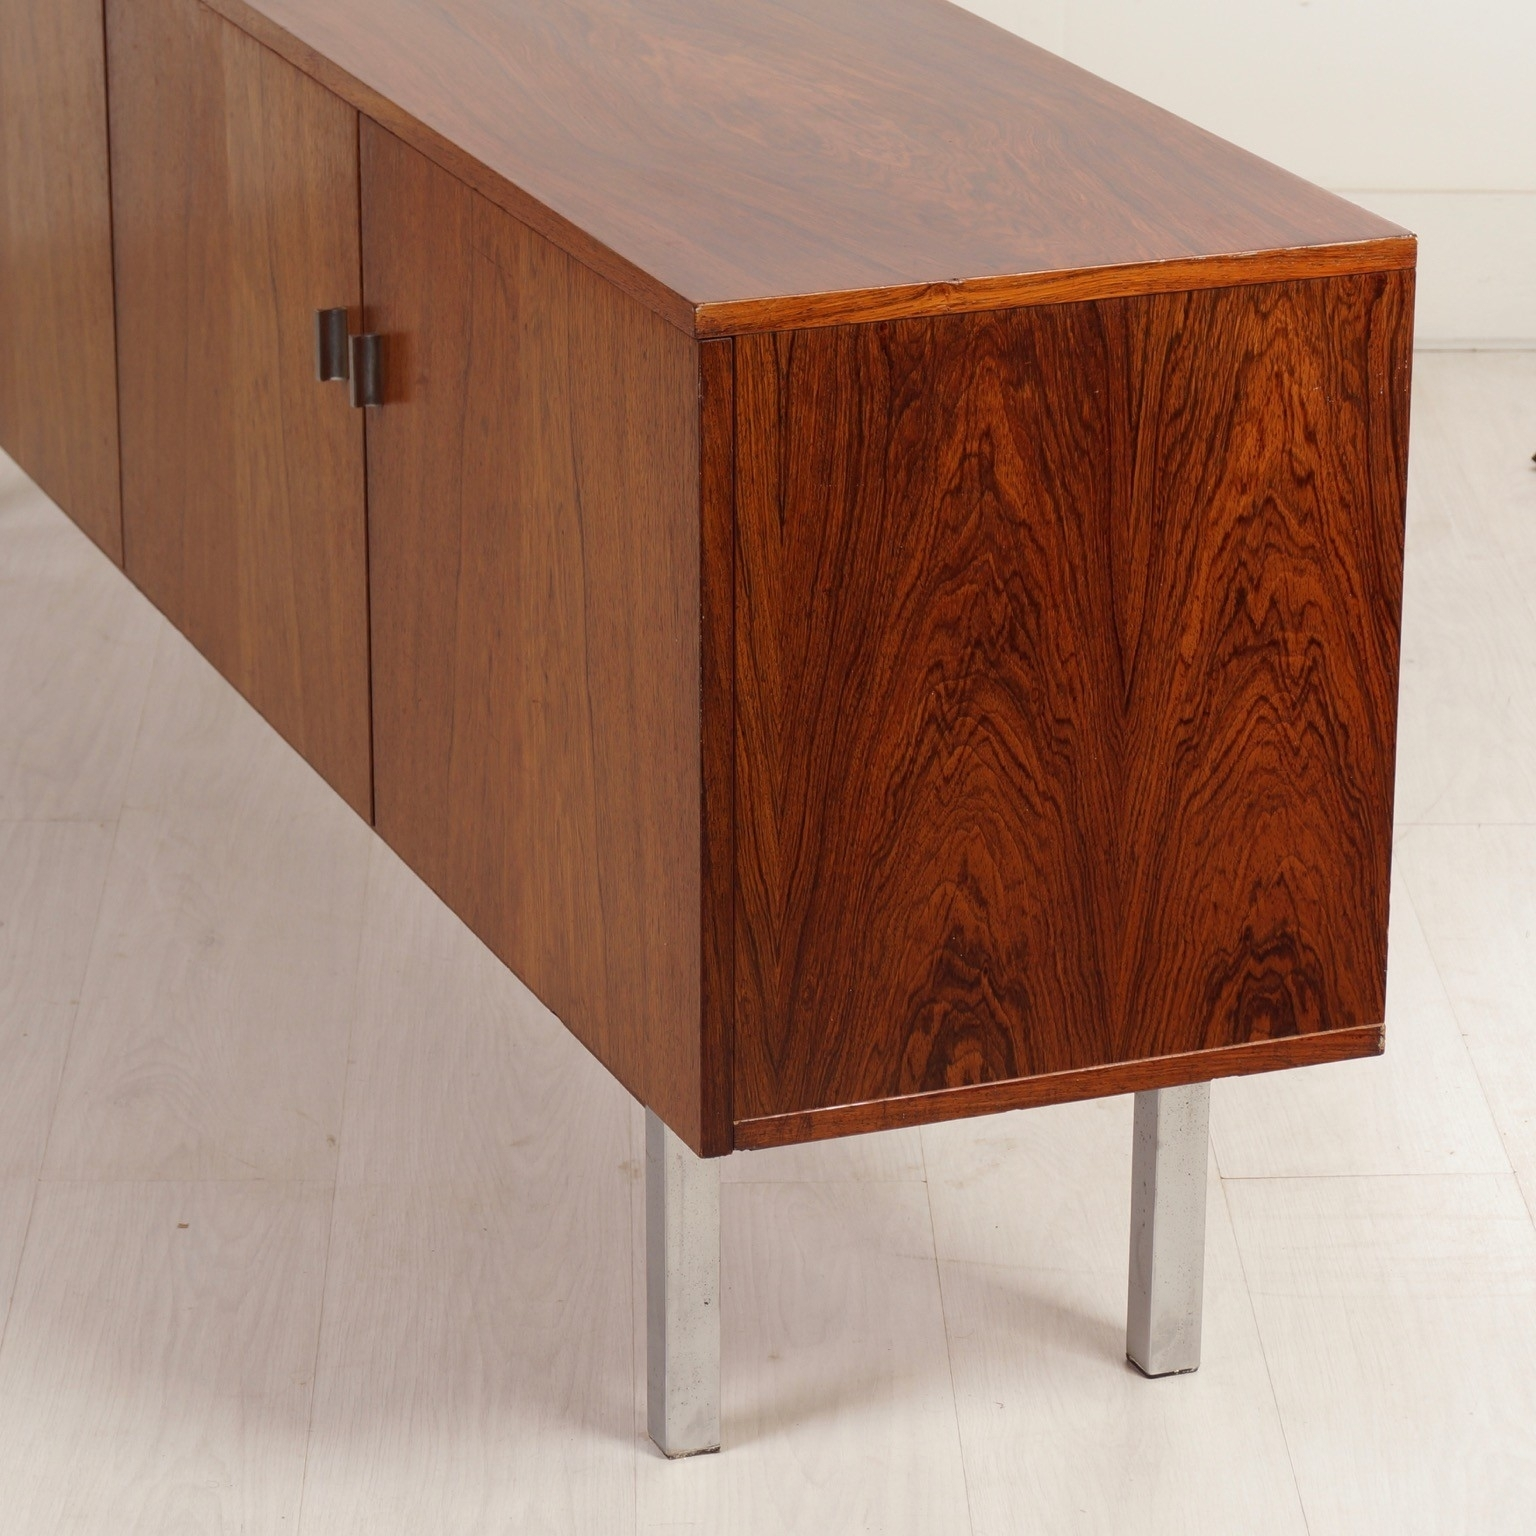 Vintage Sideboard Made Of Rosewood, 1960S – Ztijl Design With Most Recent Vintage Brown Textured Sideboards (View 4 of 20)